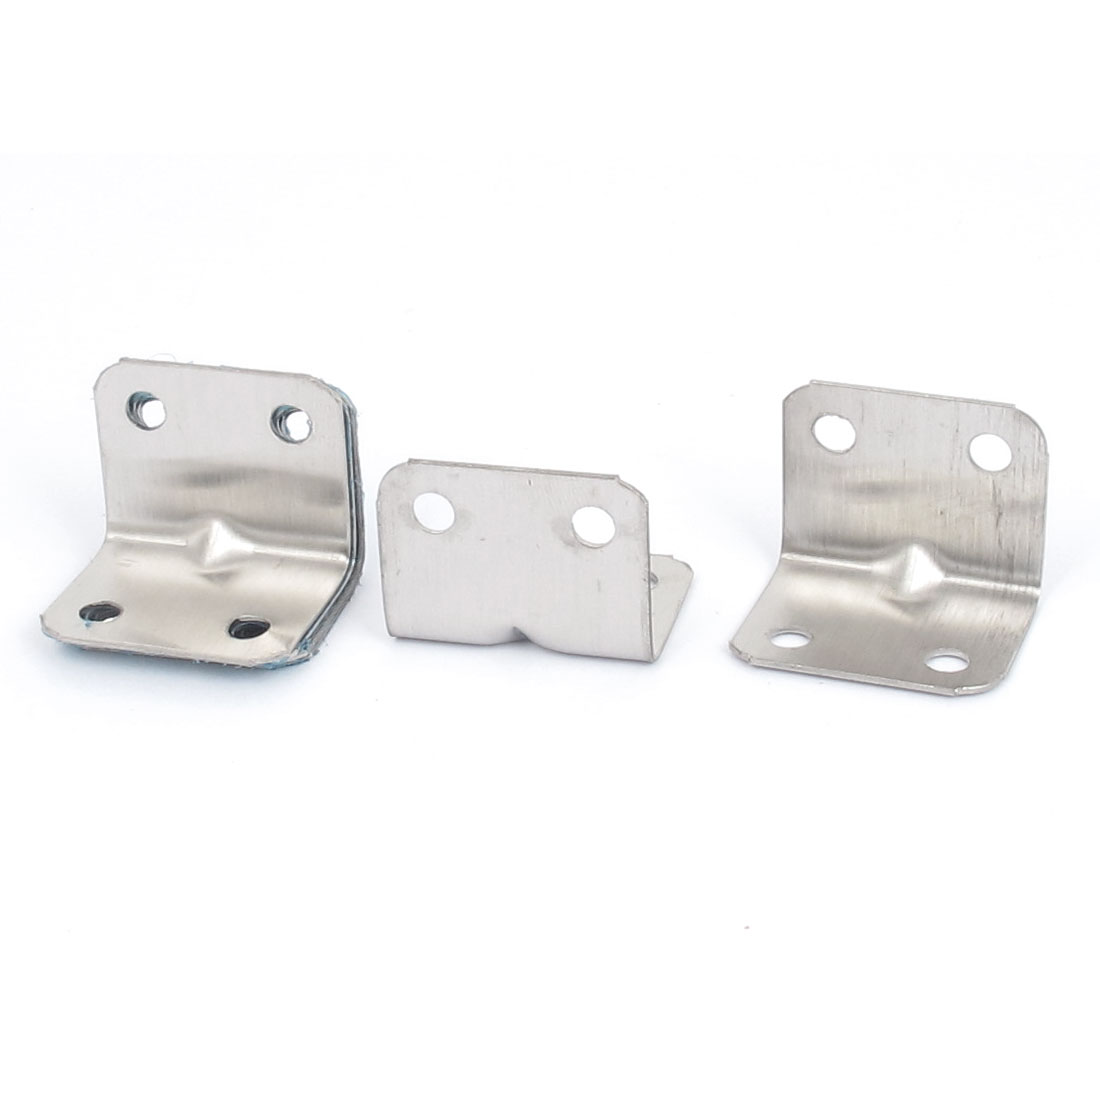 6 Pcs 32mmx25mm Corner Brace Joint Right Angle Bracket Supports